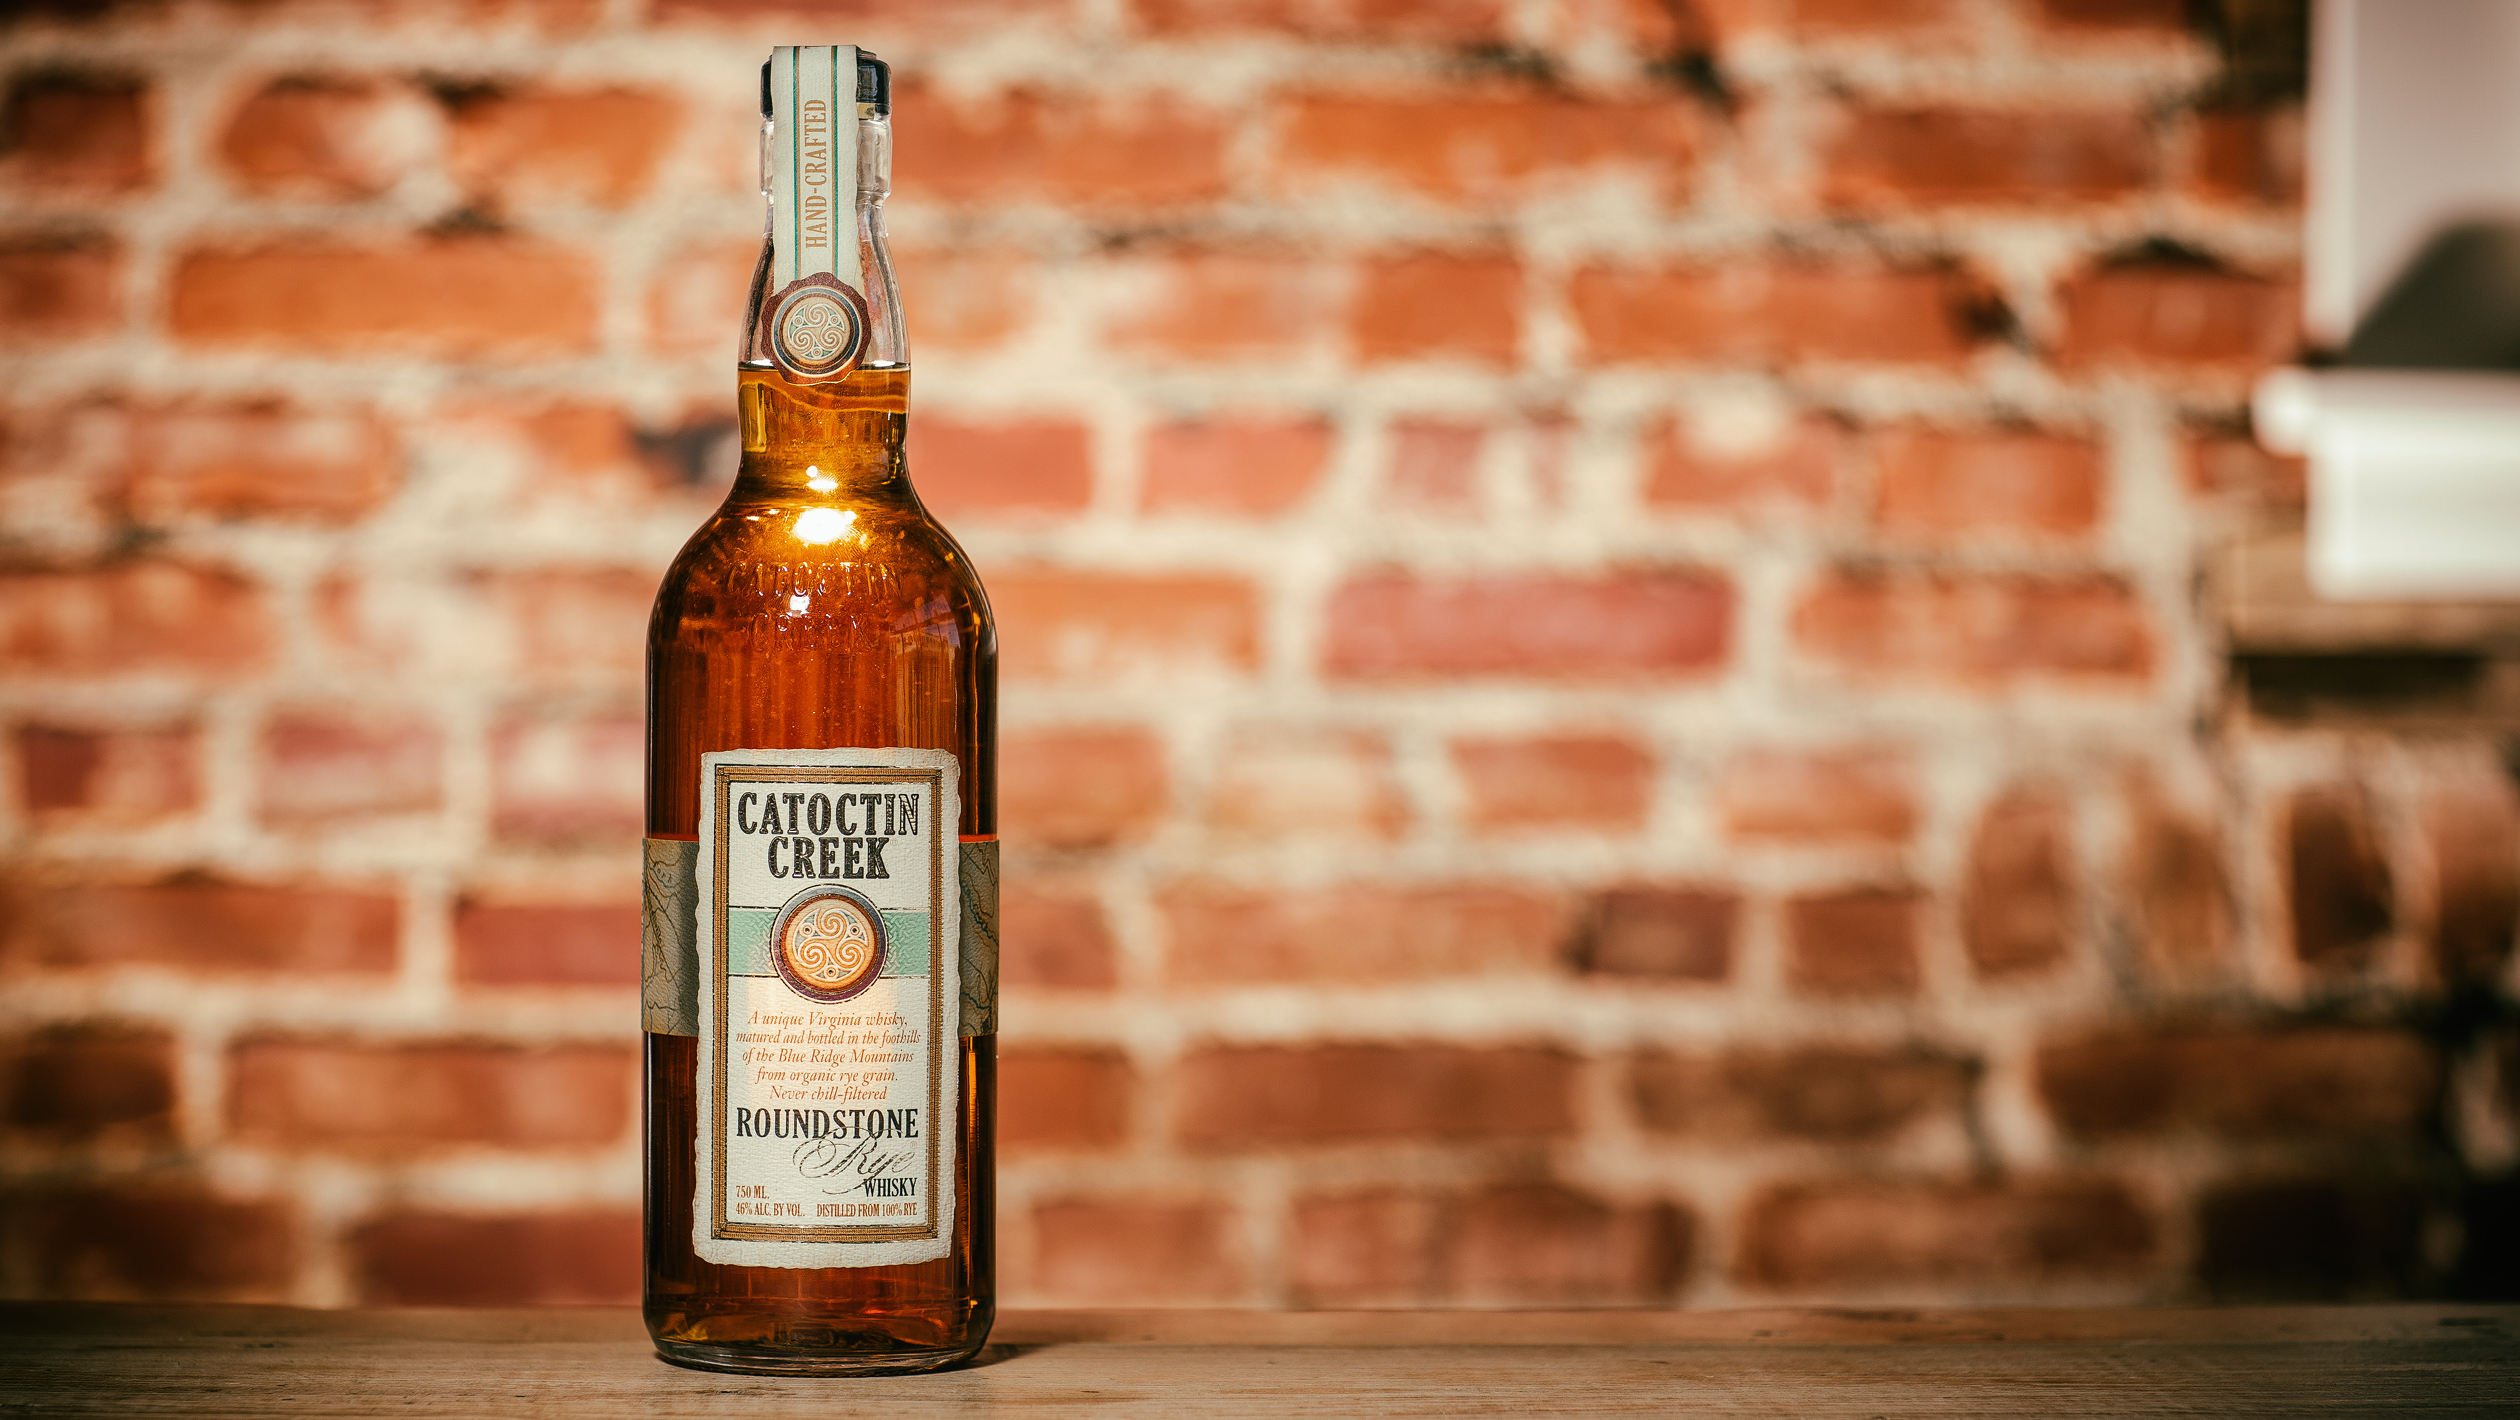 Bottle of whiskey in front of a brick wall